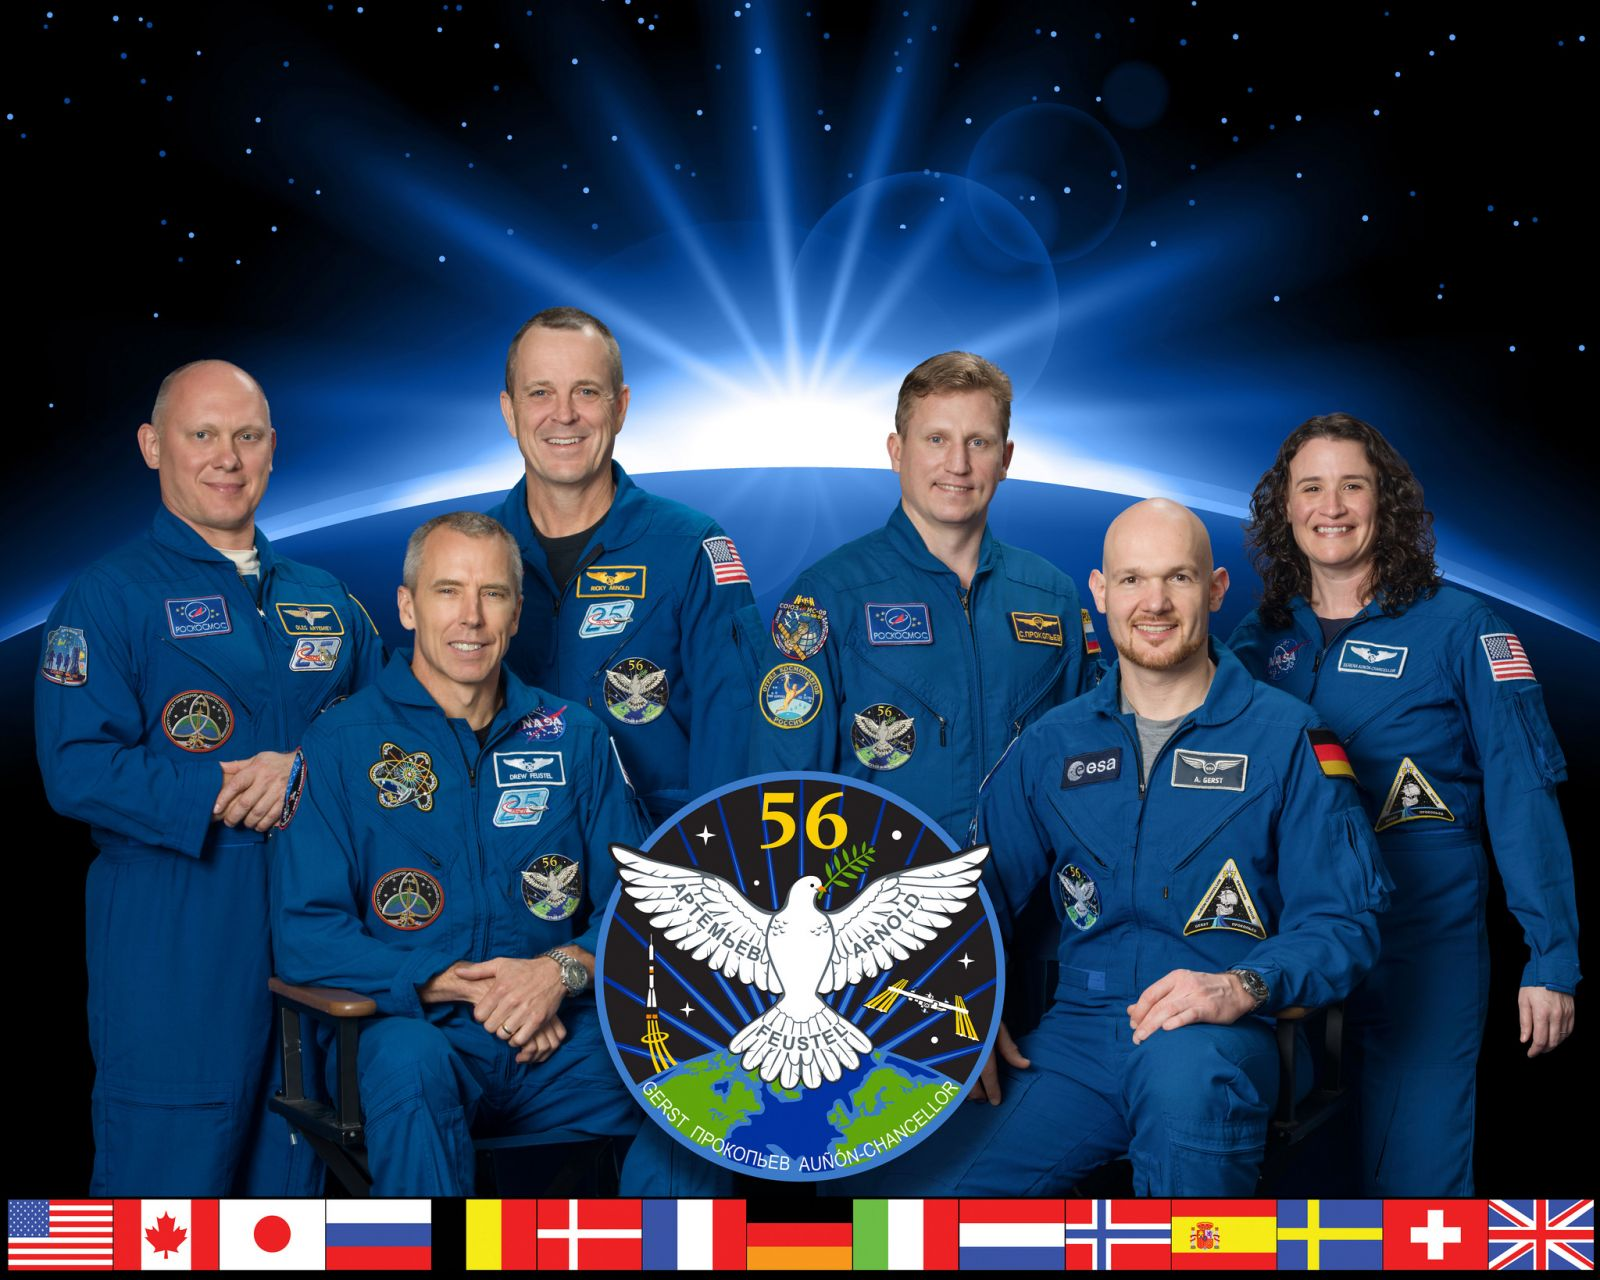 The Expedition 56 crew. Front row, from left to right: Drew Feustel and Alexander Gerst. Back row, from left to right: Oleg Artemyev, Ricky Arnold, Sergey Prokopyev and Serena Aunon-Chancellor. Photo Credit: NASA